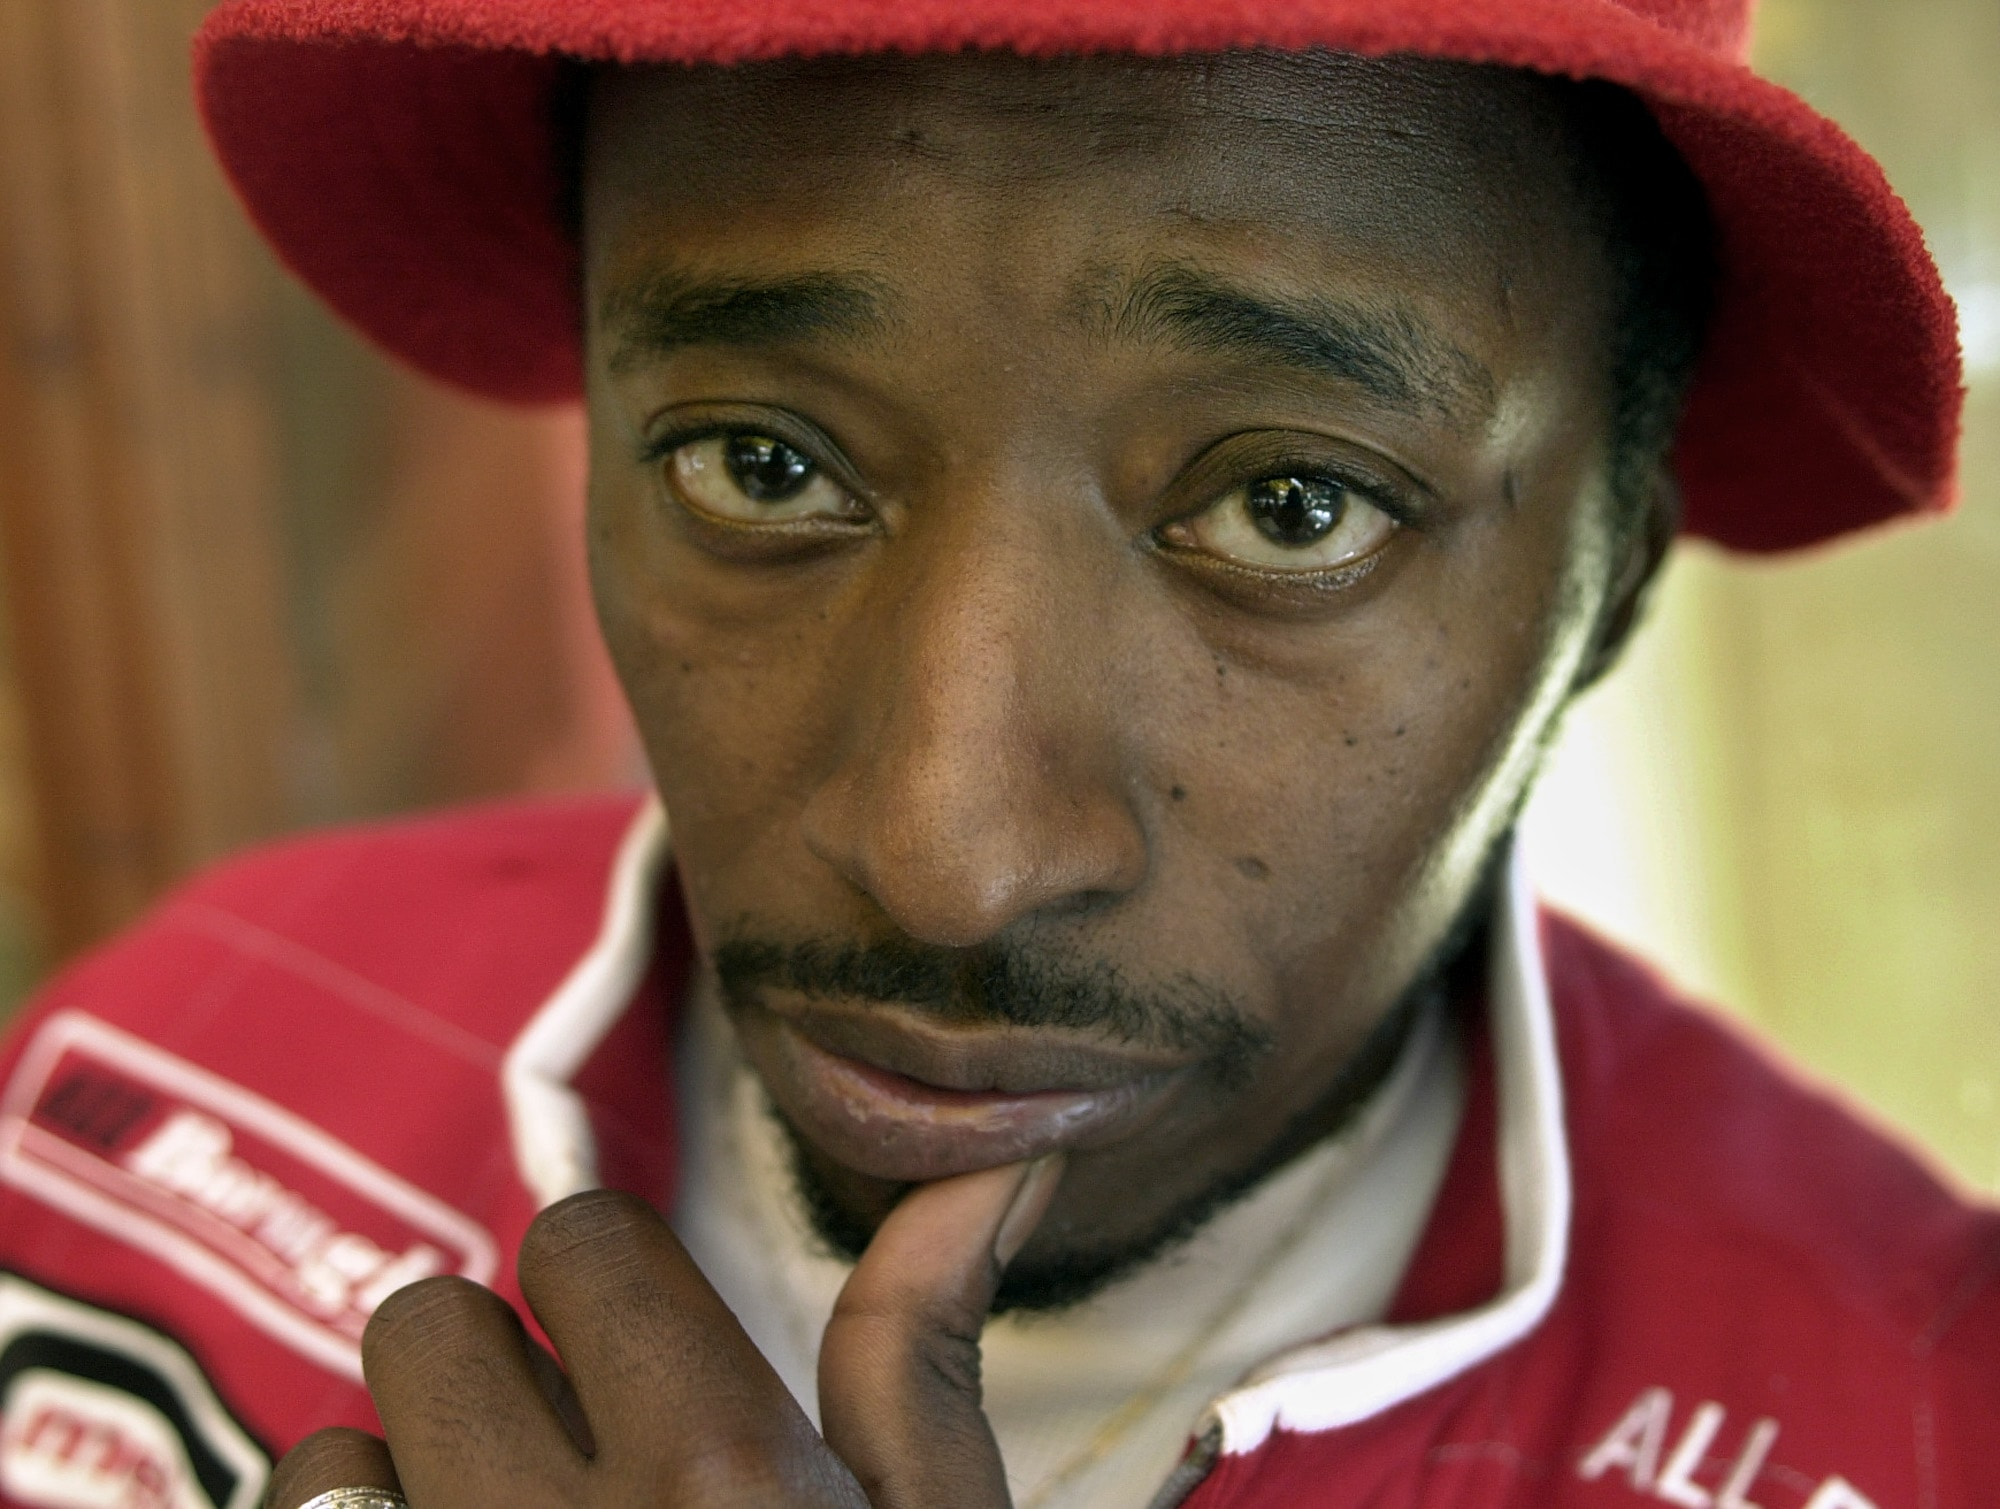 Eddie Griffin Desktop wallpaper